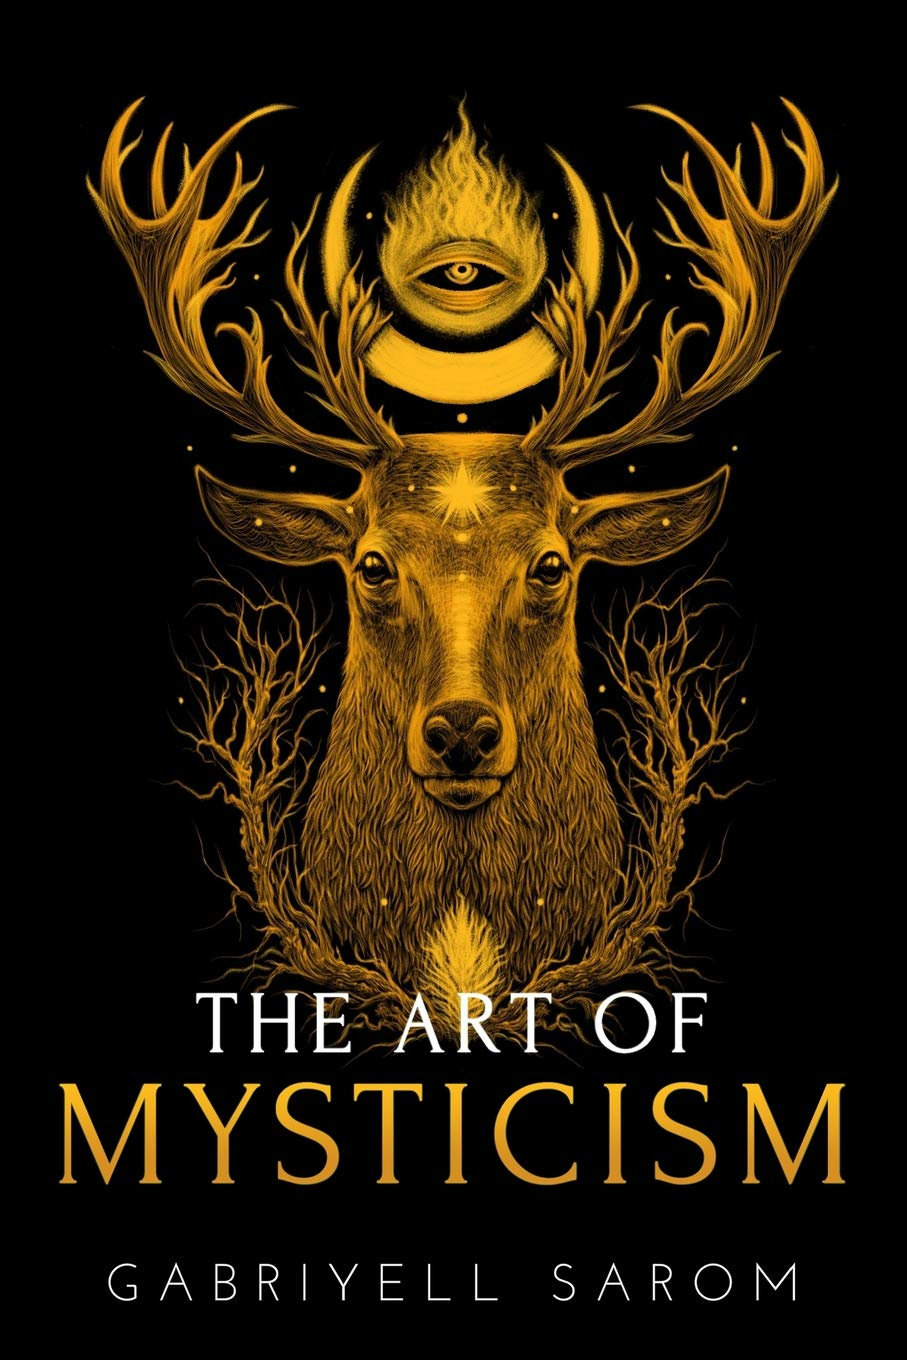 Art of Mysticism by Gabriyell Sarom